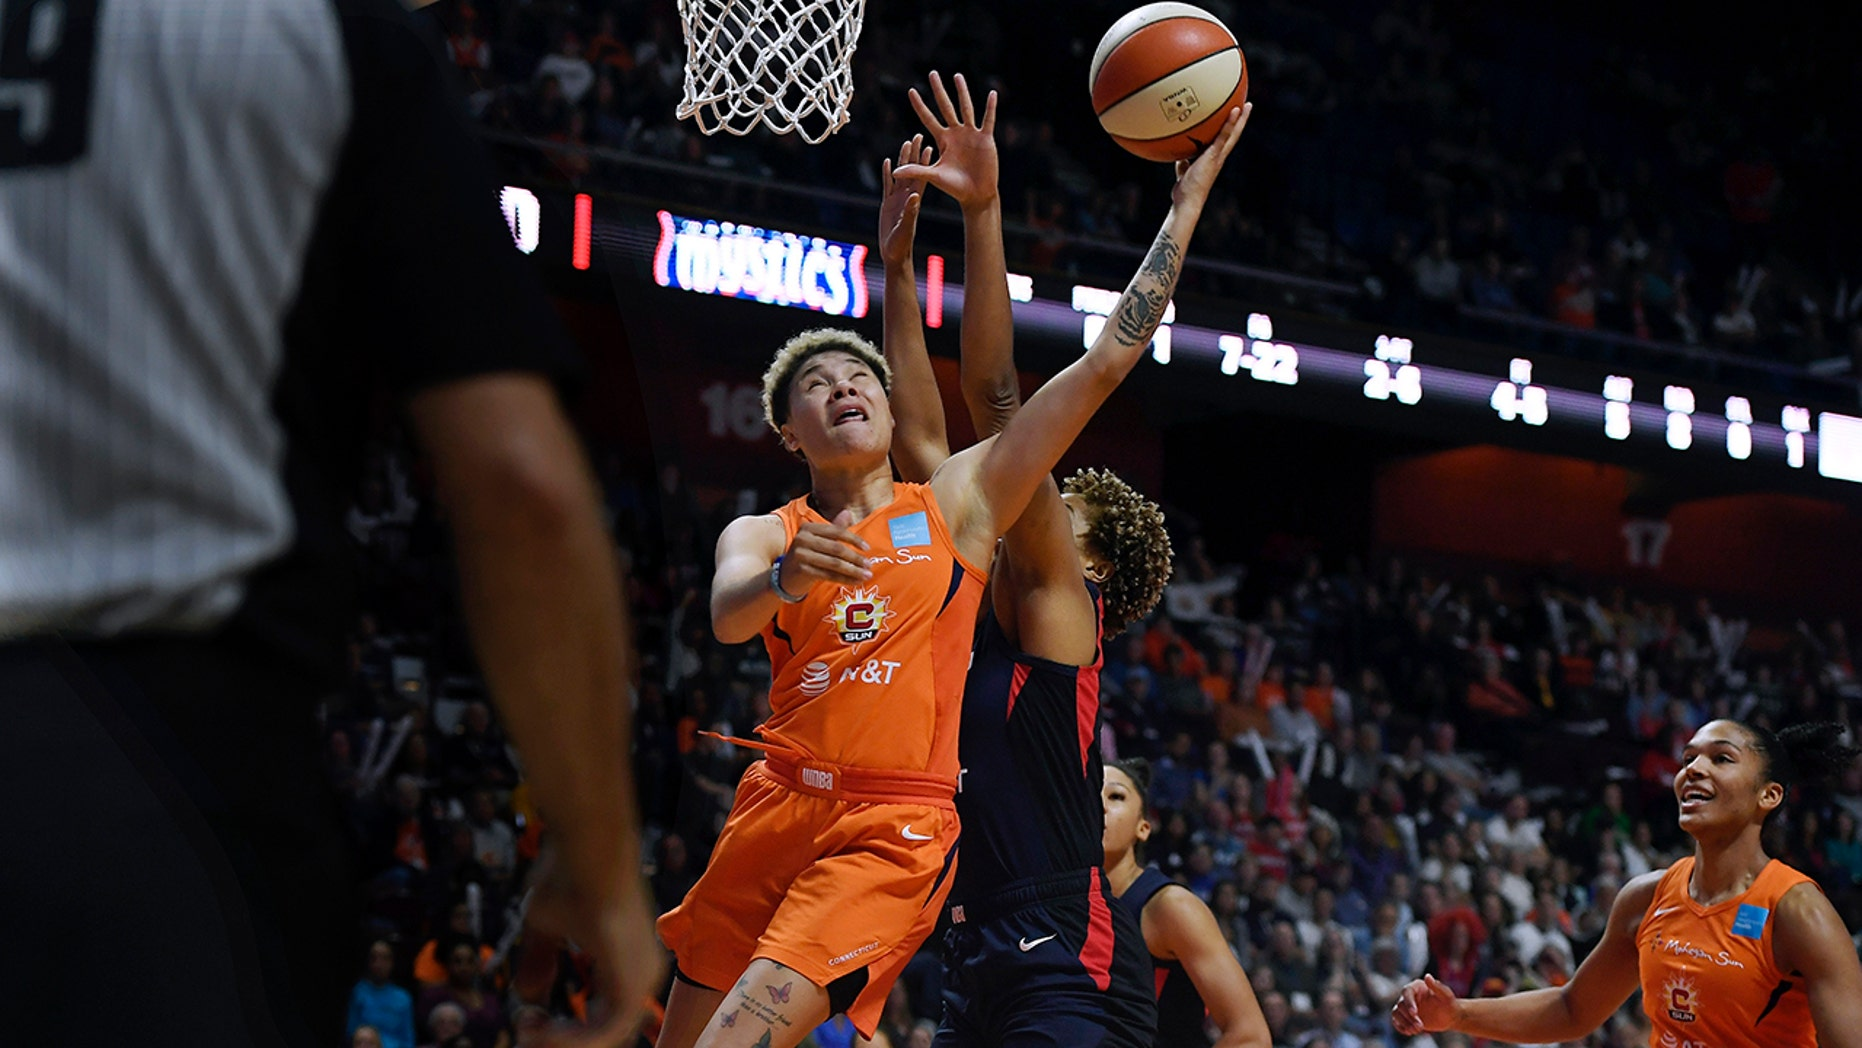 WNBA Finals: Washington Mystics forward Emma Meesseman named Finals MVP